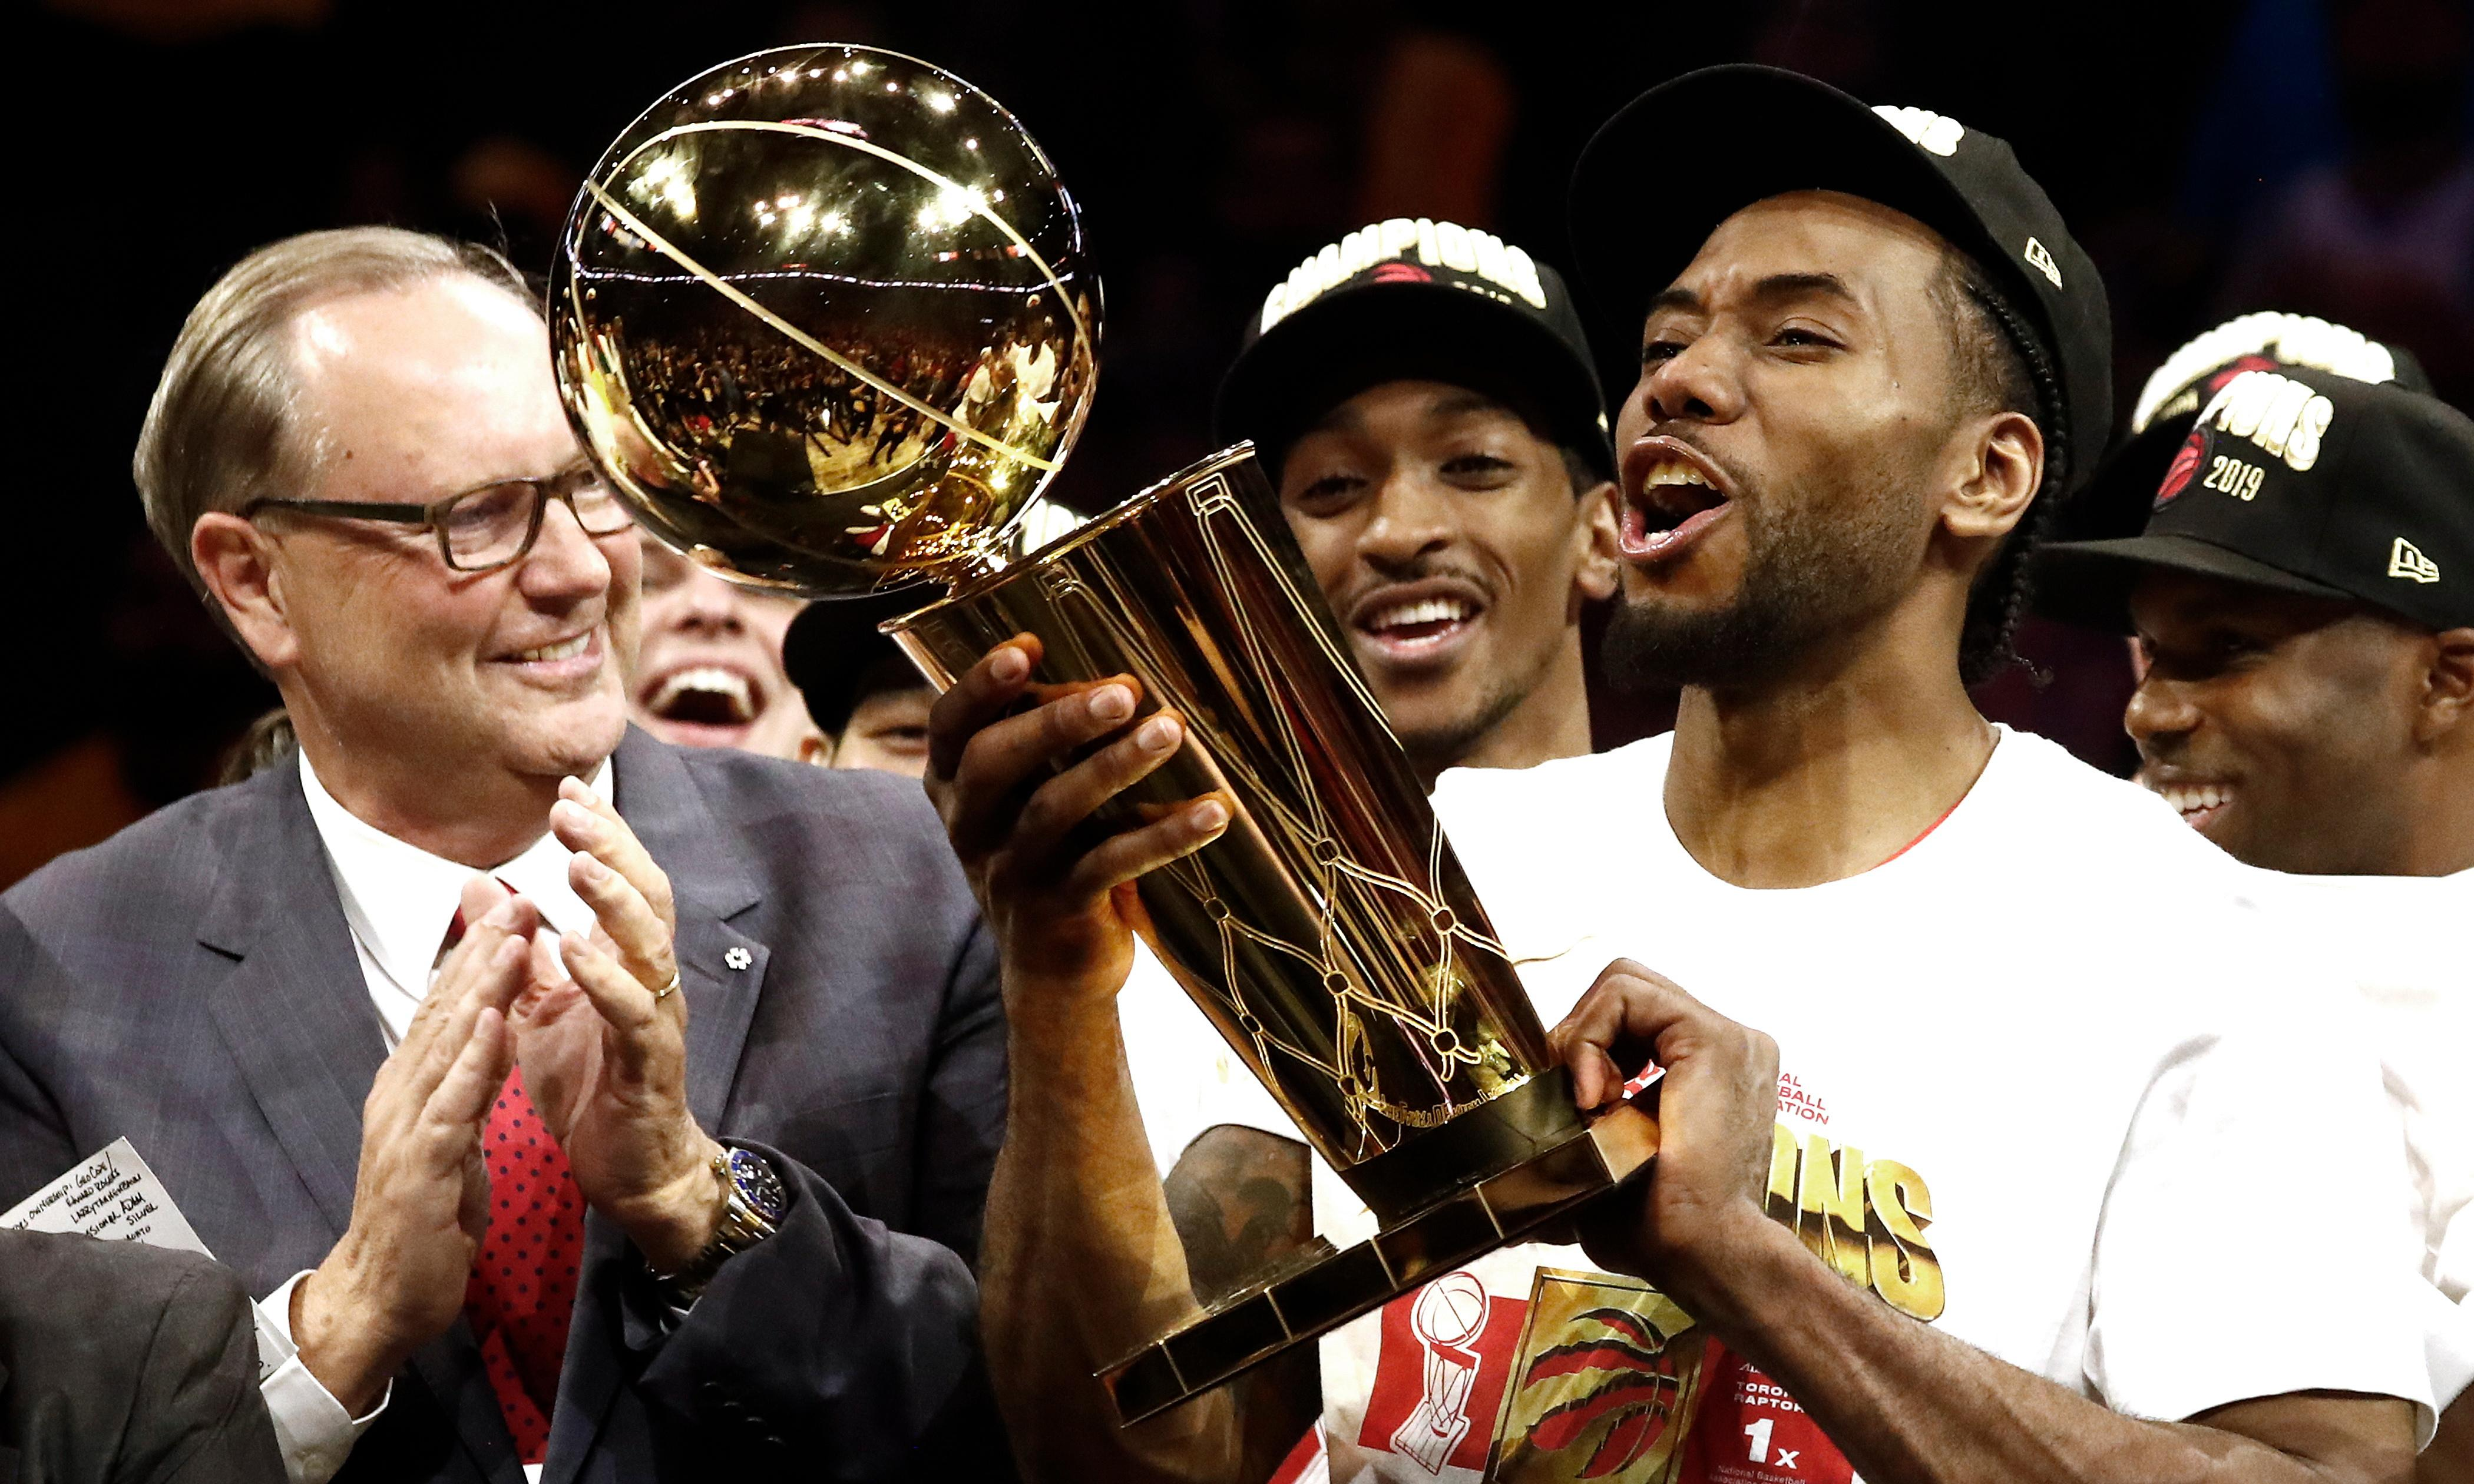 In the era of player power, the Raptors' NBA dynasty may be over before it begins